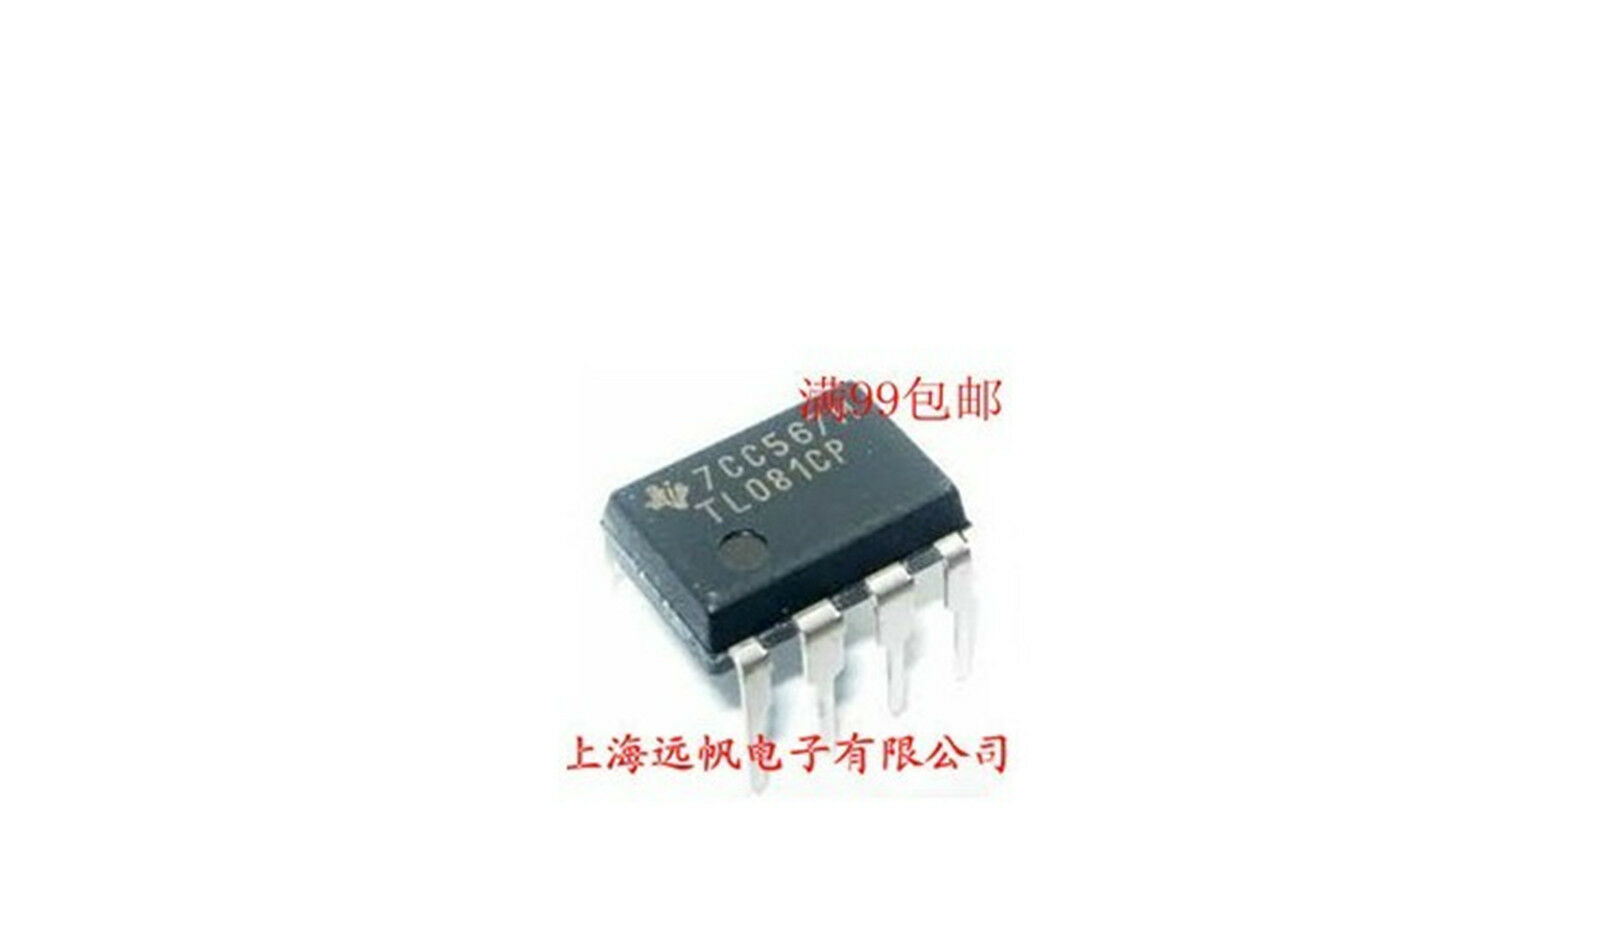 10pcs Tl081 Tl081cn Tl081cp High Speed Ic Op Amp Jfet Dip 8 664 Wide Bandwidth Amps 1 Of 1free Shipping See More